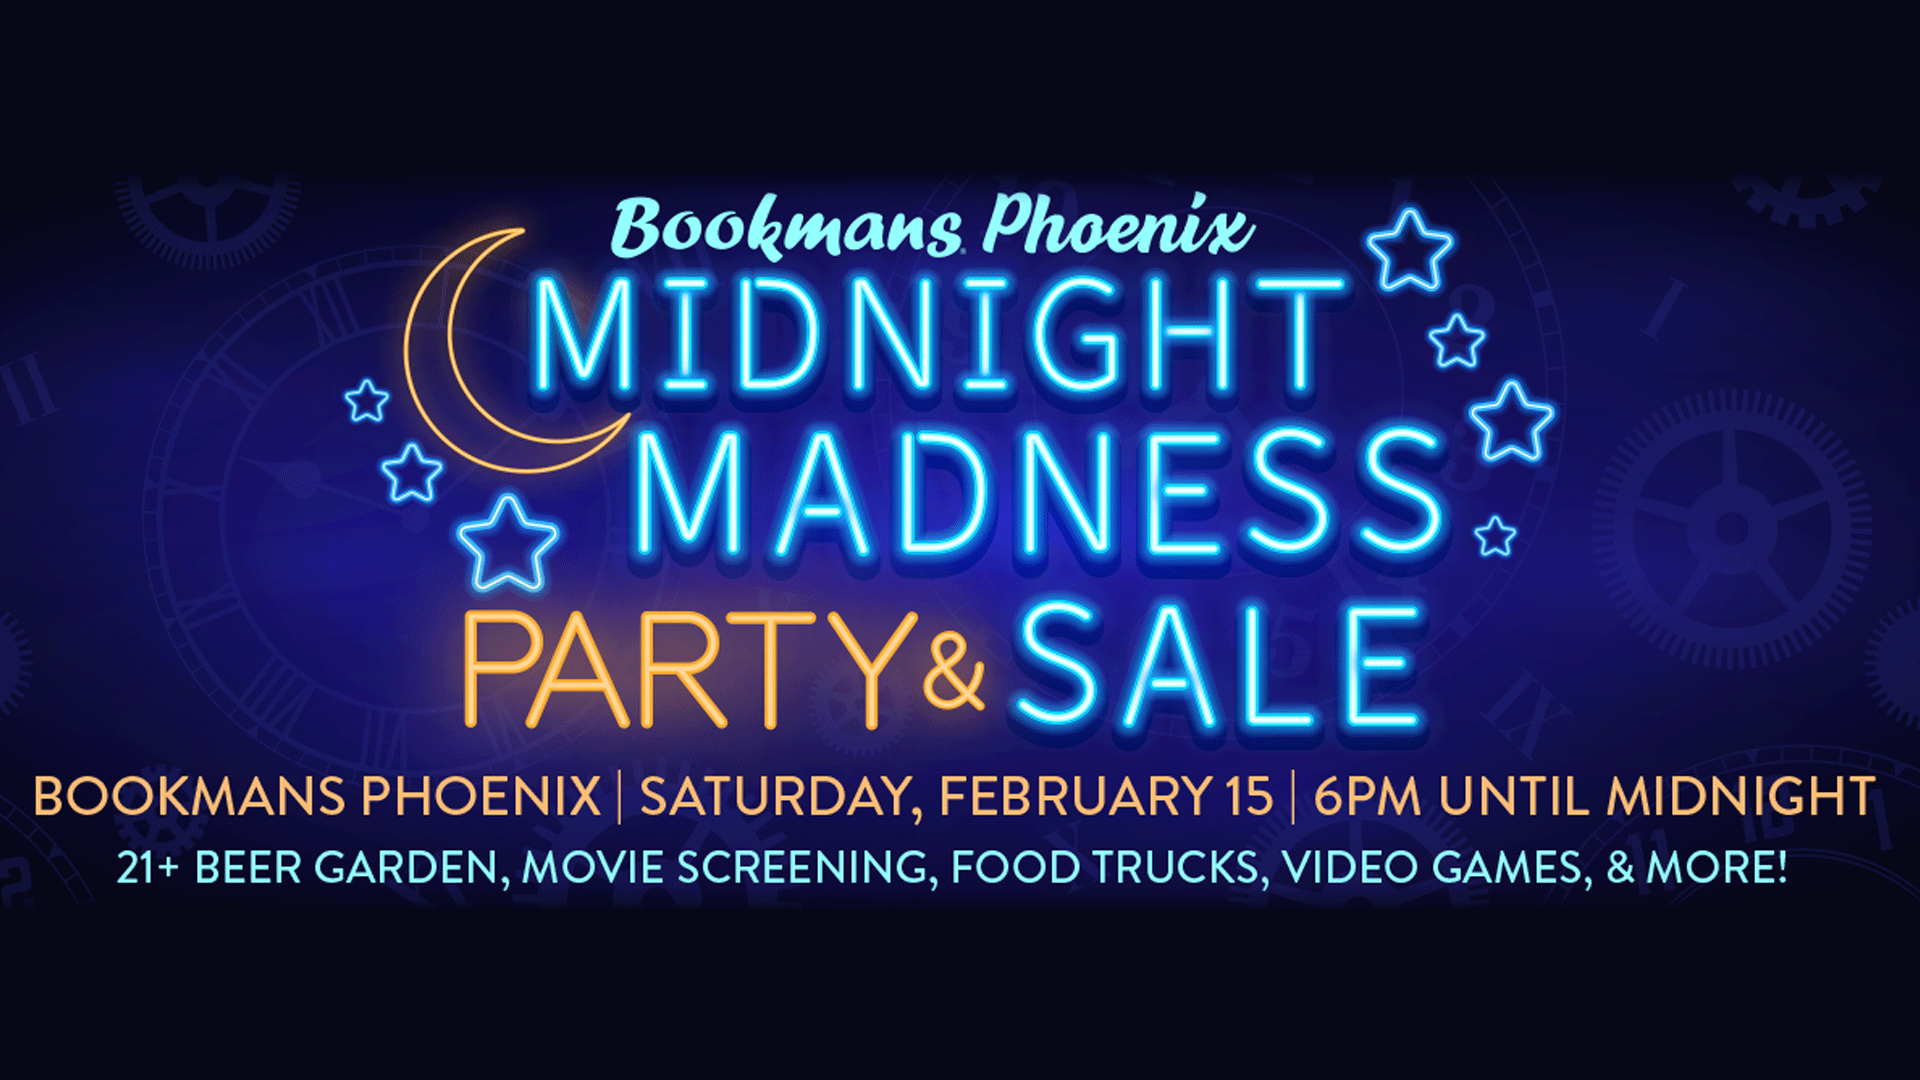 midnight madness party and sale at bookmans phoenix february 15